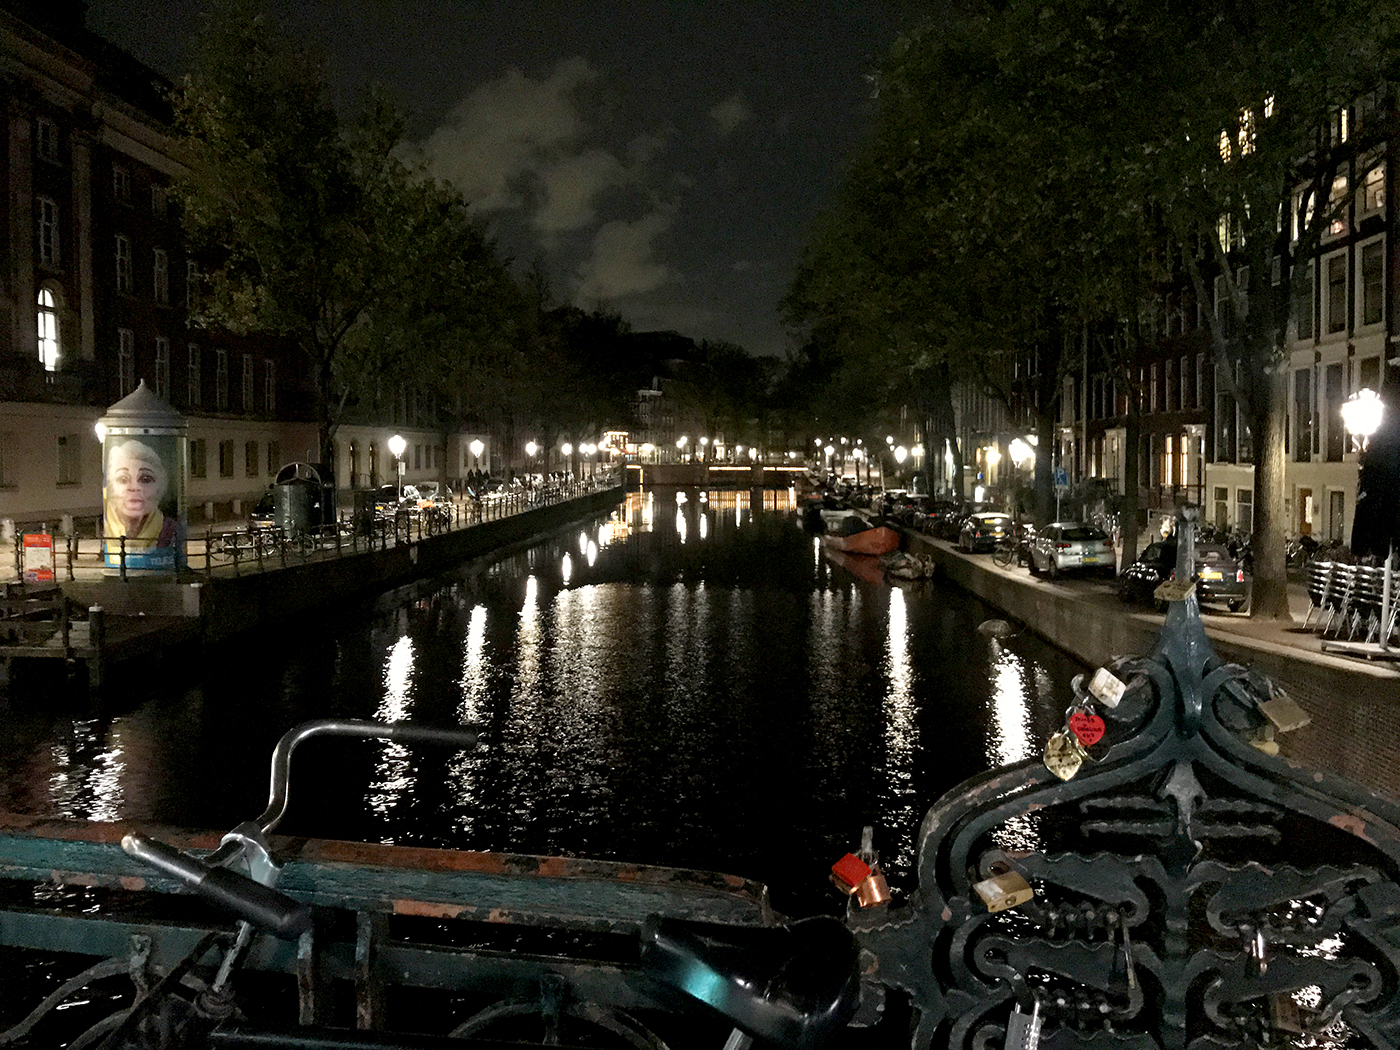 amsterdam night view of bridges